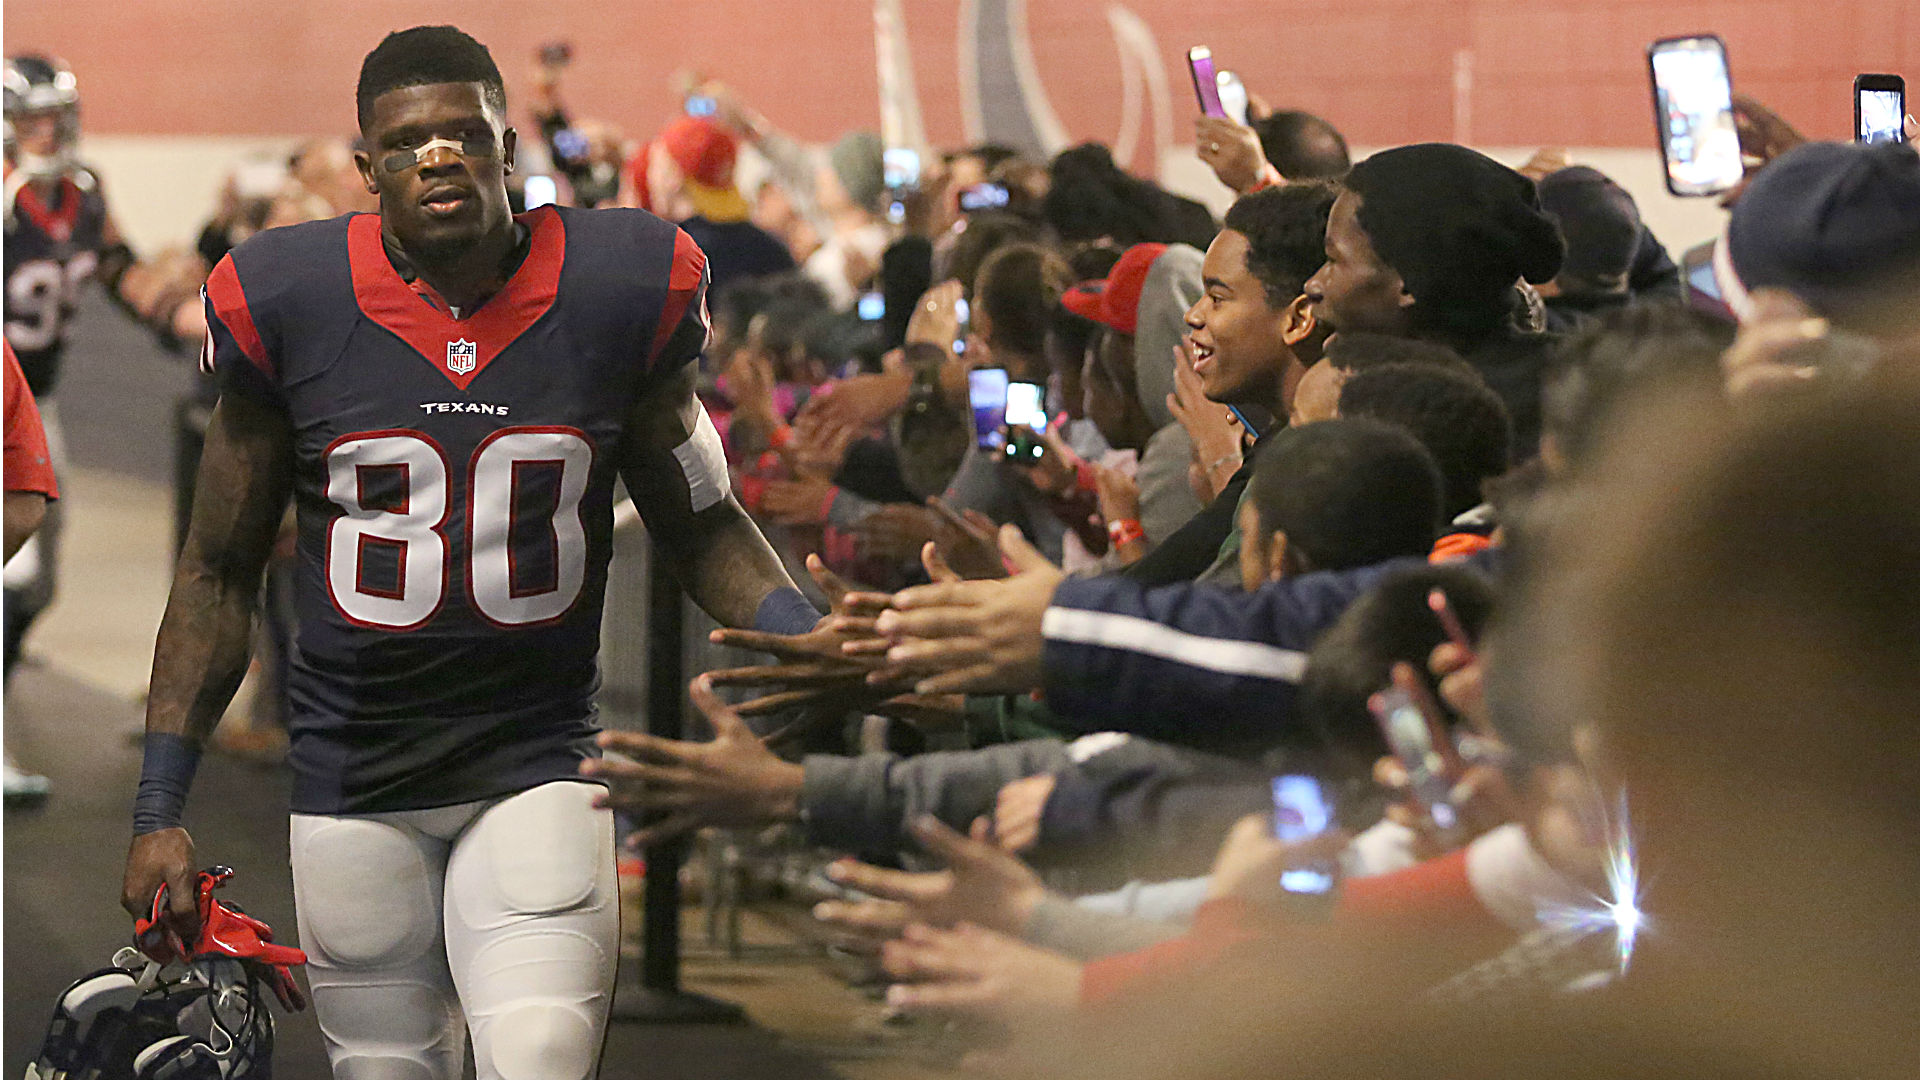 Andre Johnson told Bill O'Brien 'trade or release me' after fateful conversation